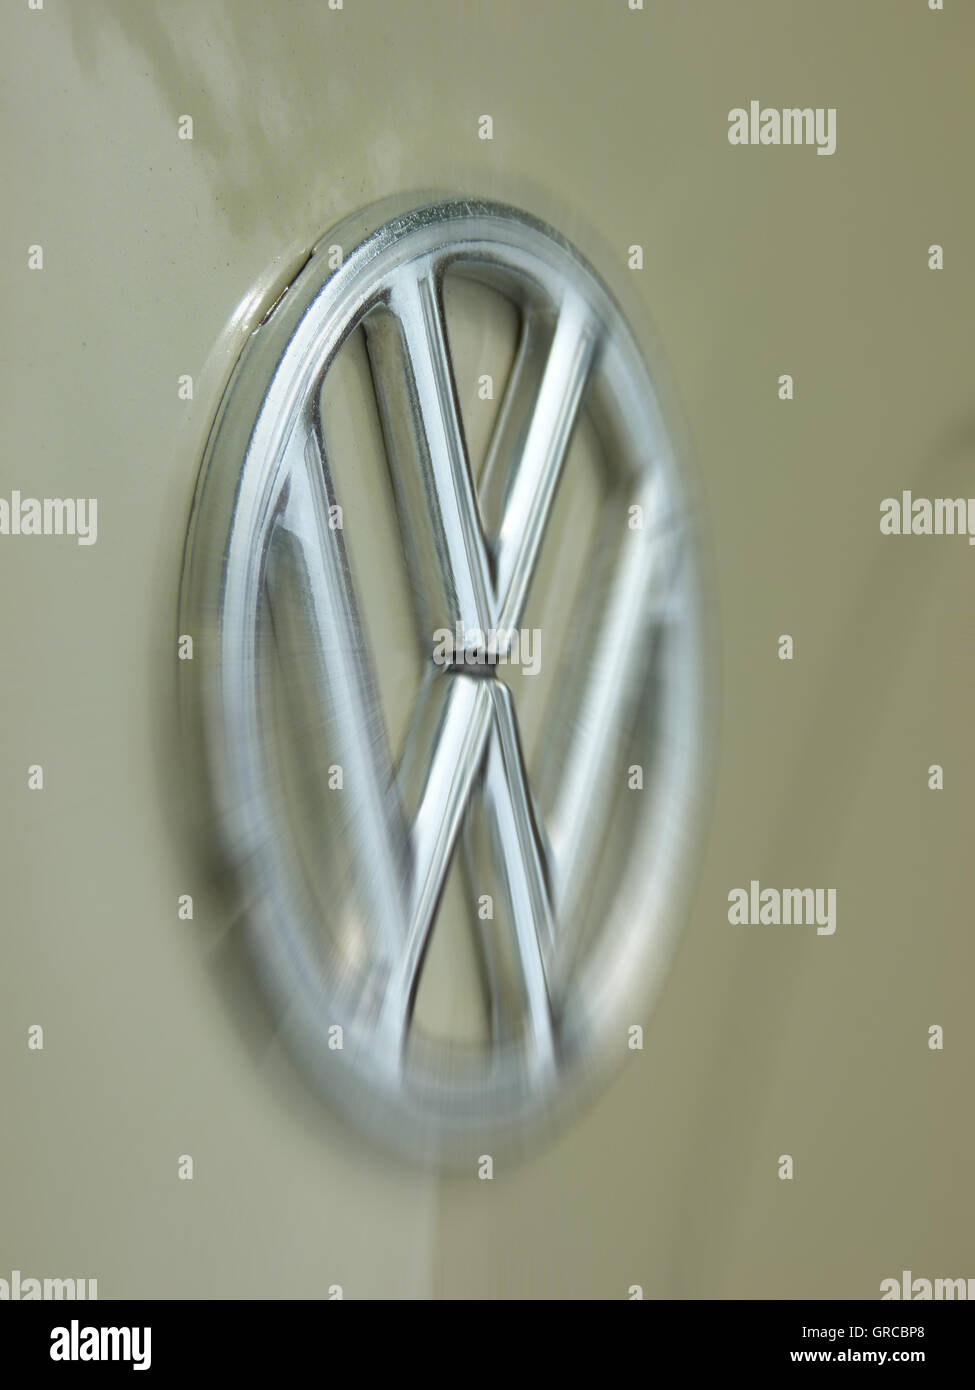 Vw Logo, Vw Affair, Symbol - Stock Image